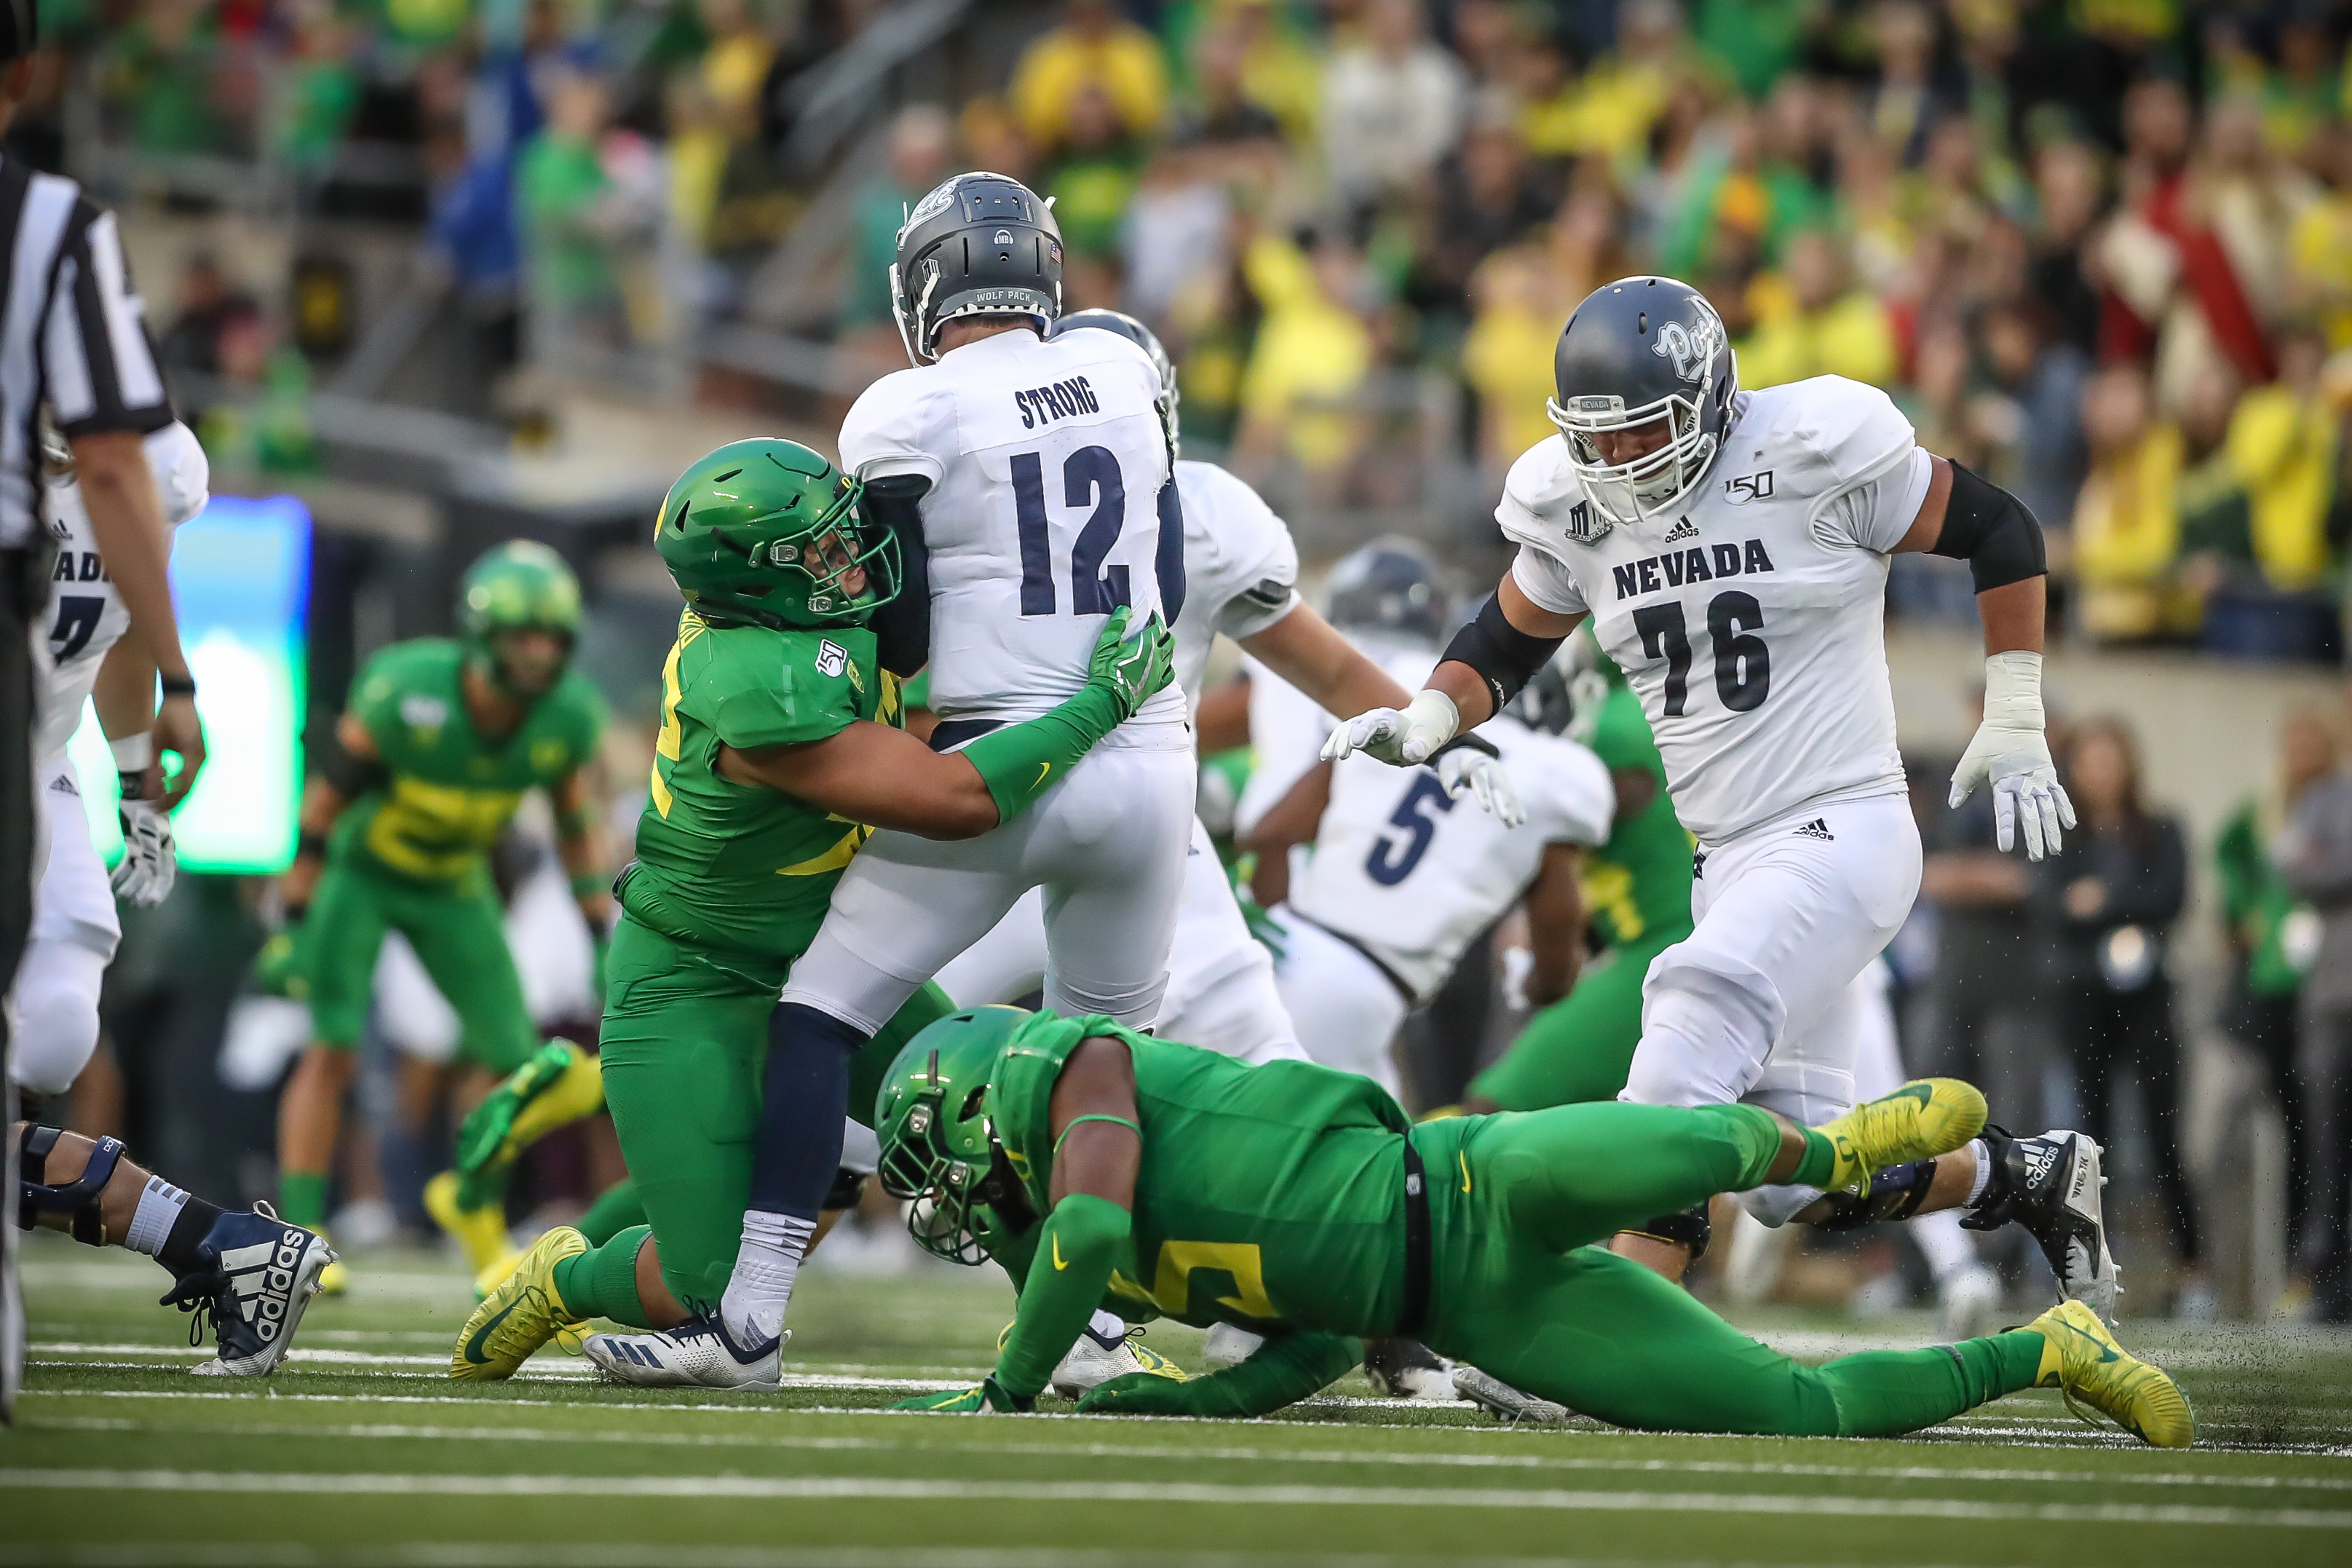 Rewinding No  16 Oregon Ducks 77-6 rout of Nevada Wolf Pack